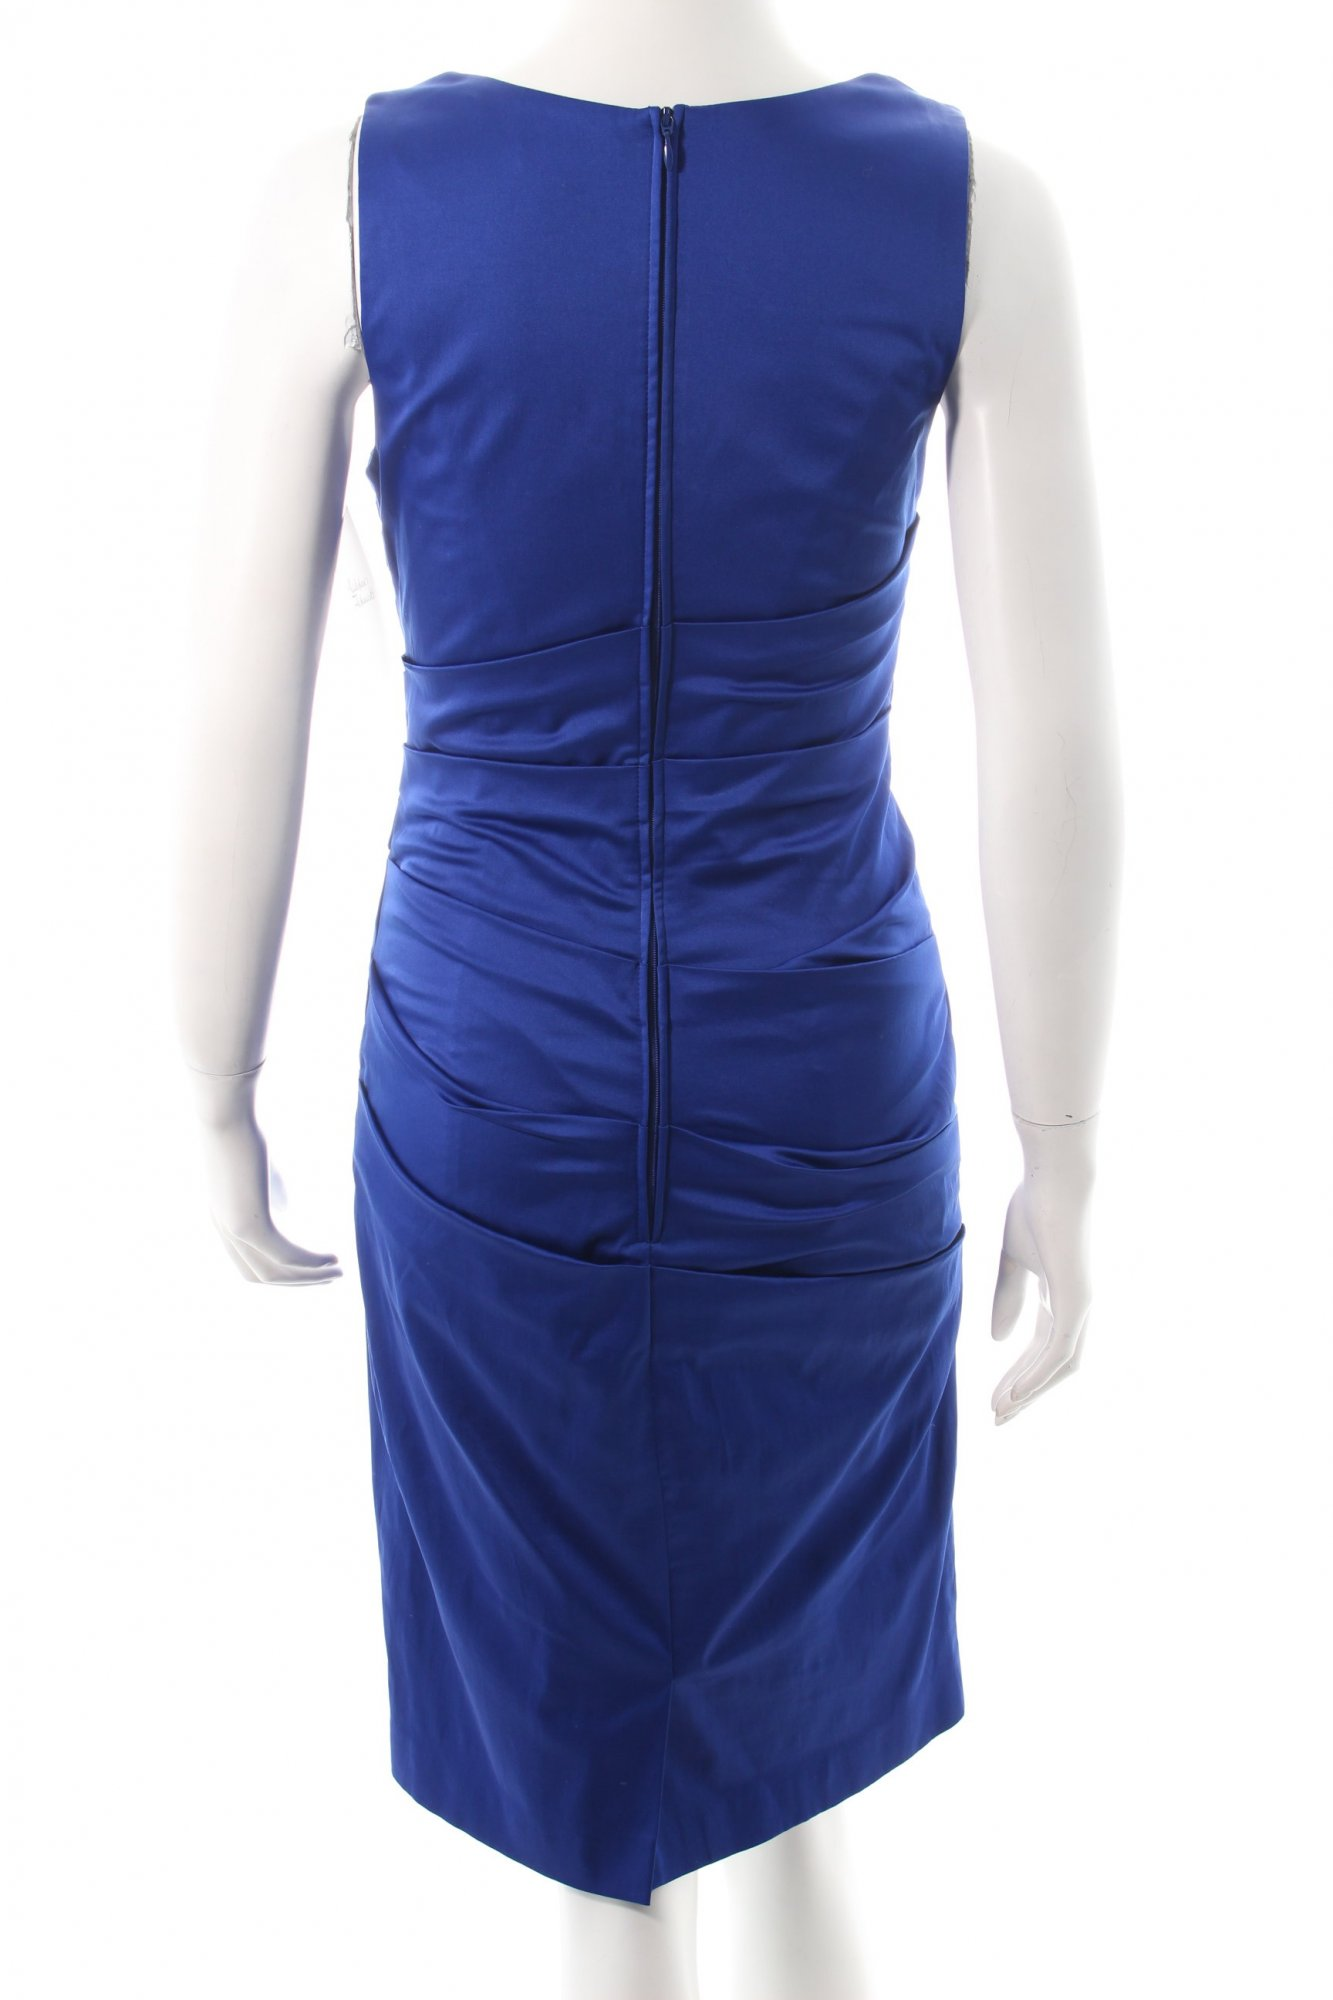 vera mont cocktailkleid blau eleganz look damen gr de 36 kleid dress ebay. Black Bedroom Furniture Sets. Home Design Ideas